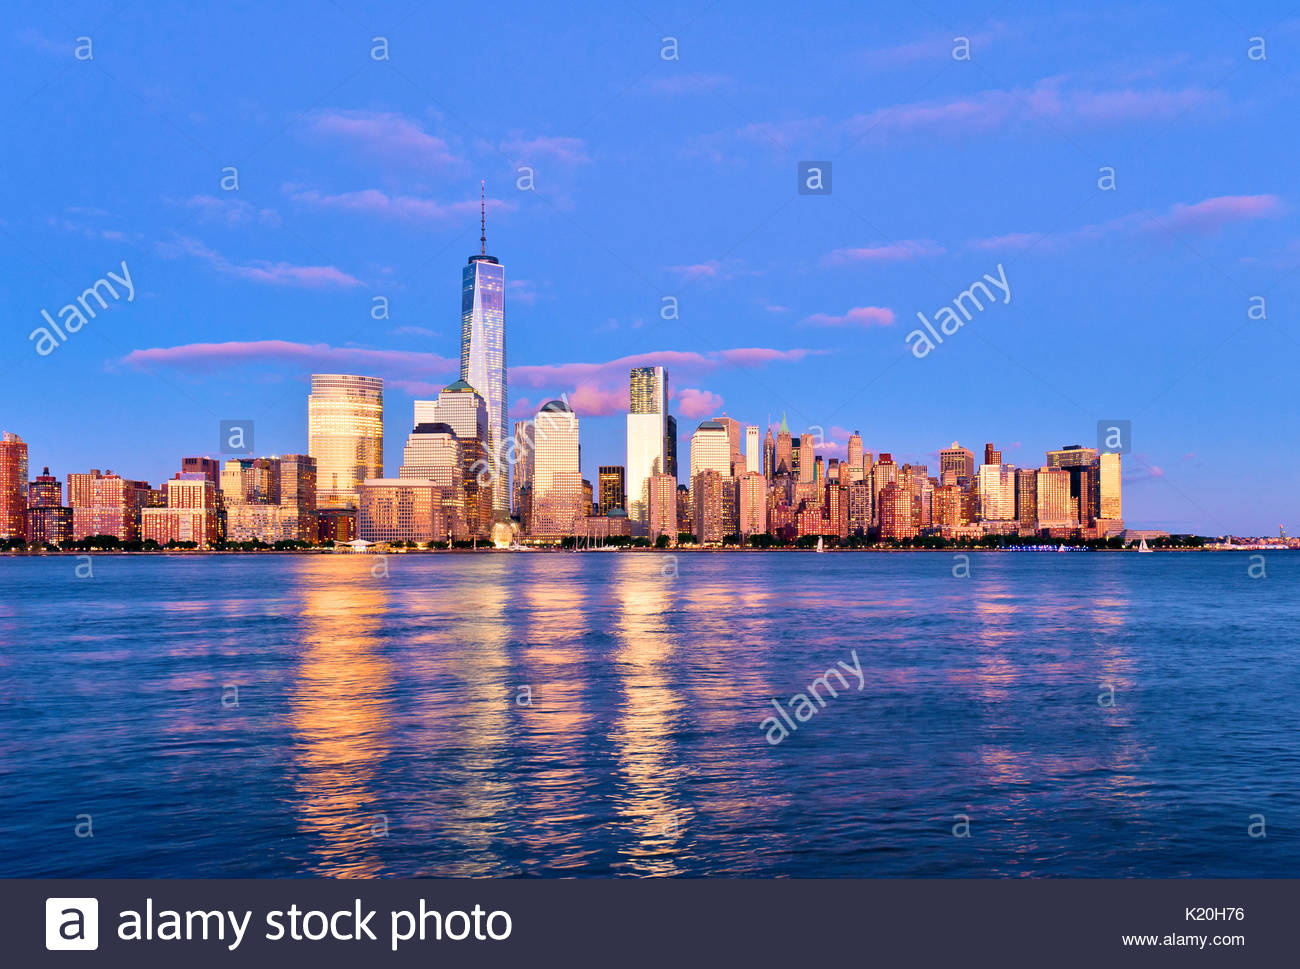 New York Skyline New York City One World Trade Center - Stock Image